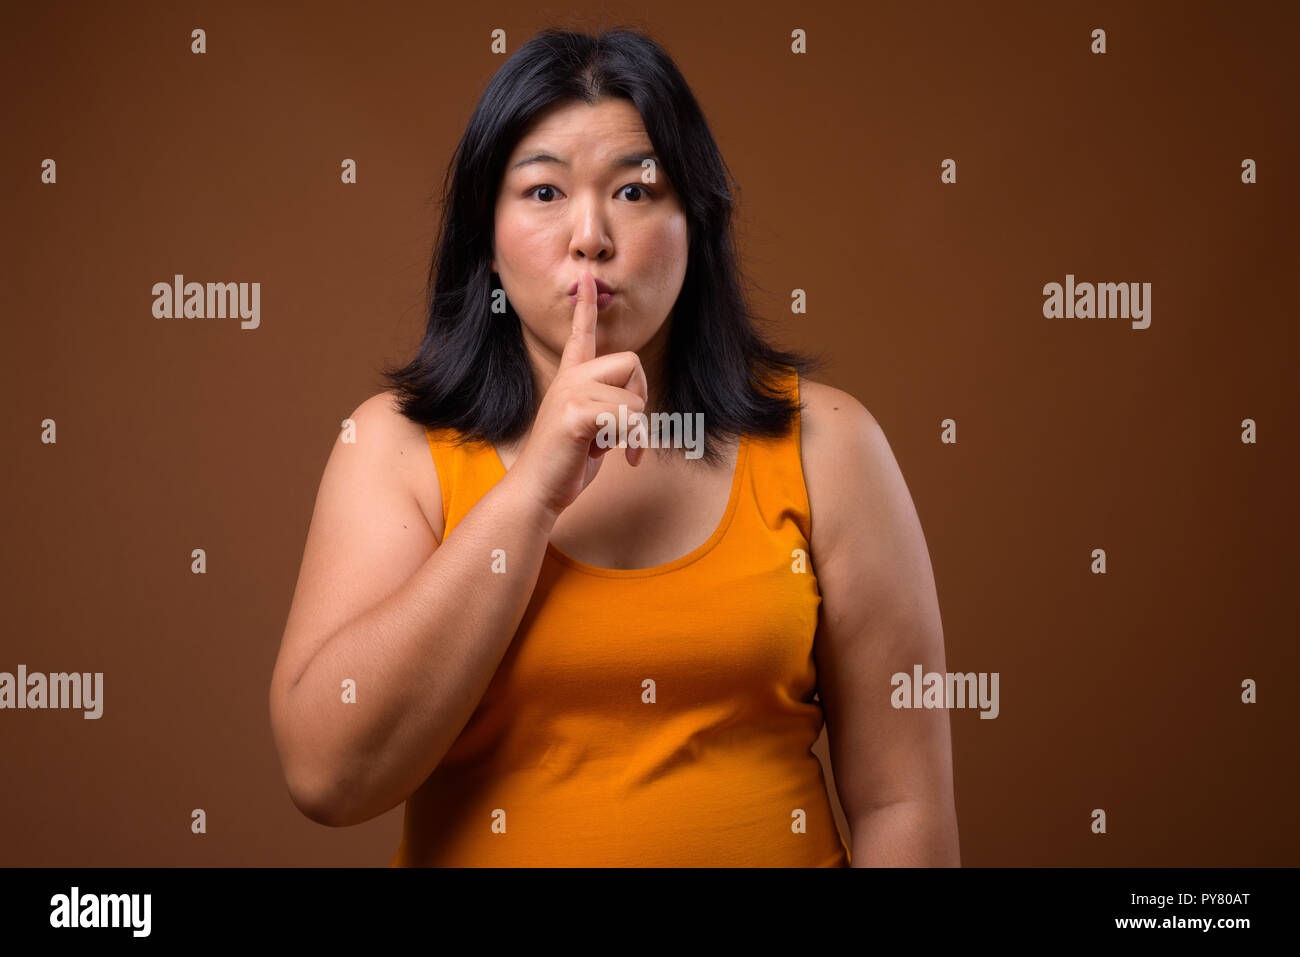 Beautiful overweight Asian woman hush with finger on lips - Stock Image